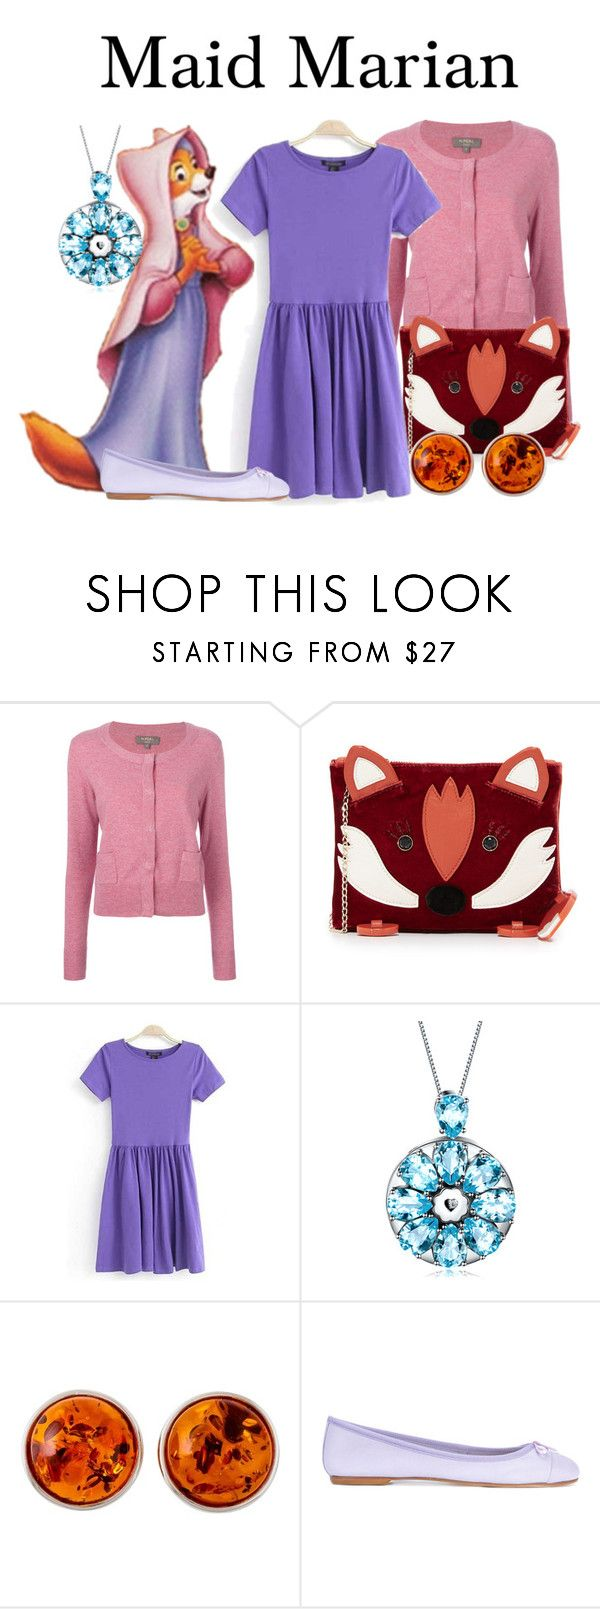 """""""Maid Marian"""" by megan-vanwinkle ❤ liked on Polyvore featuring N.Peal, Charlotte Olympia, Be-Jewelled and ANNA BAIGUERA"""